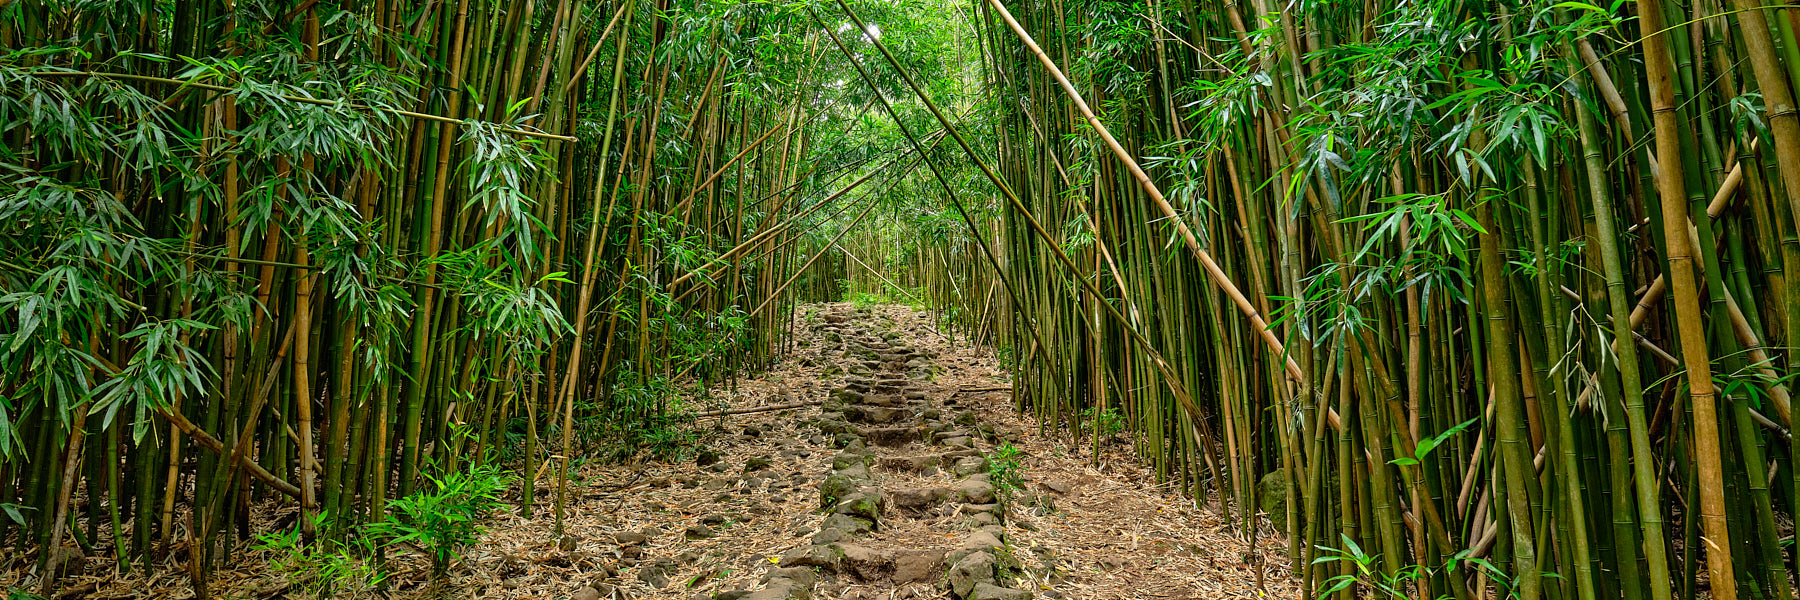 bamboo, hana, hawaii, maui, path, pipiwai trail, pipiwai, haleakala national park, green, panoramic, panorama, photo